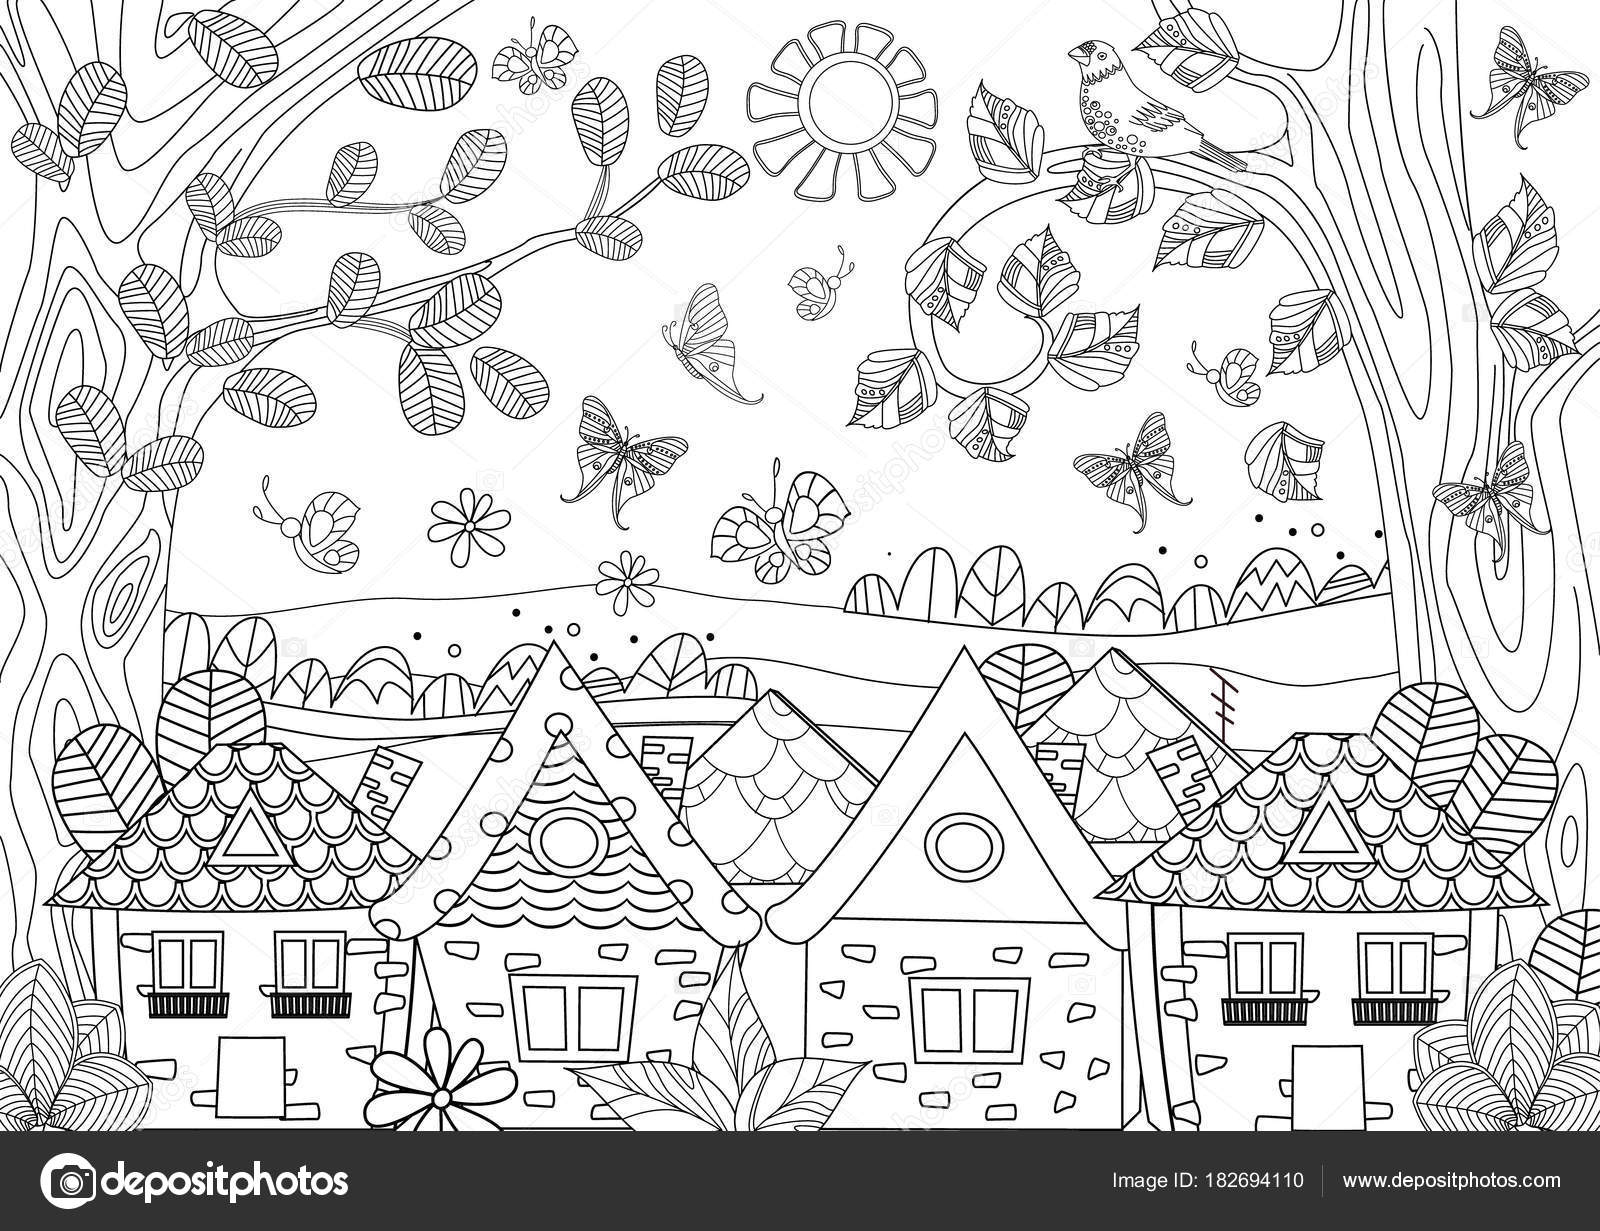 Nature Landscape Cozy Houses Your Coloring Book Vector